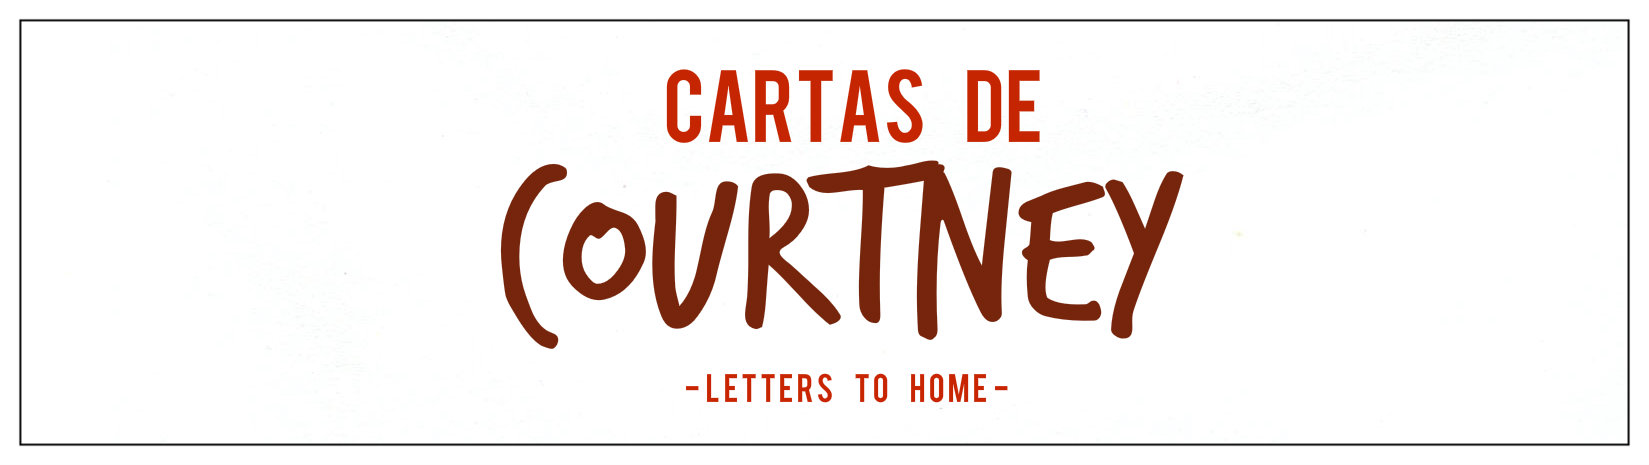 Cartas de Courtney / letters to home